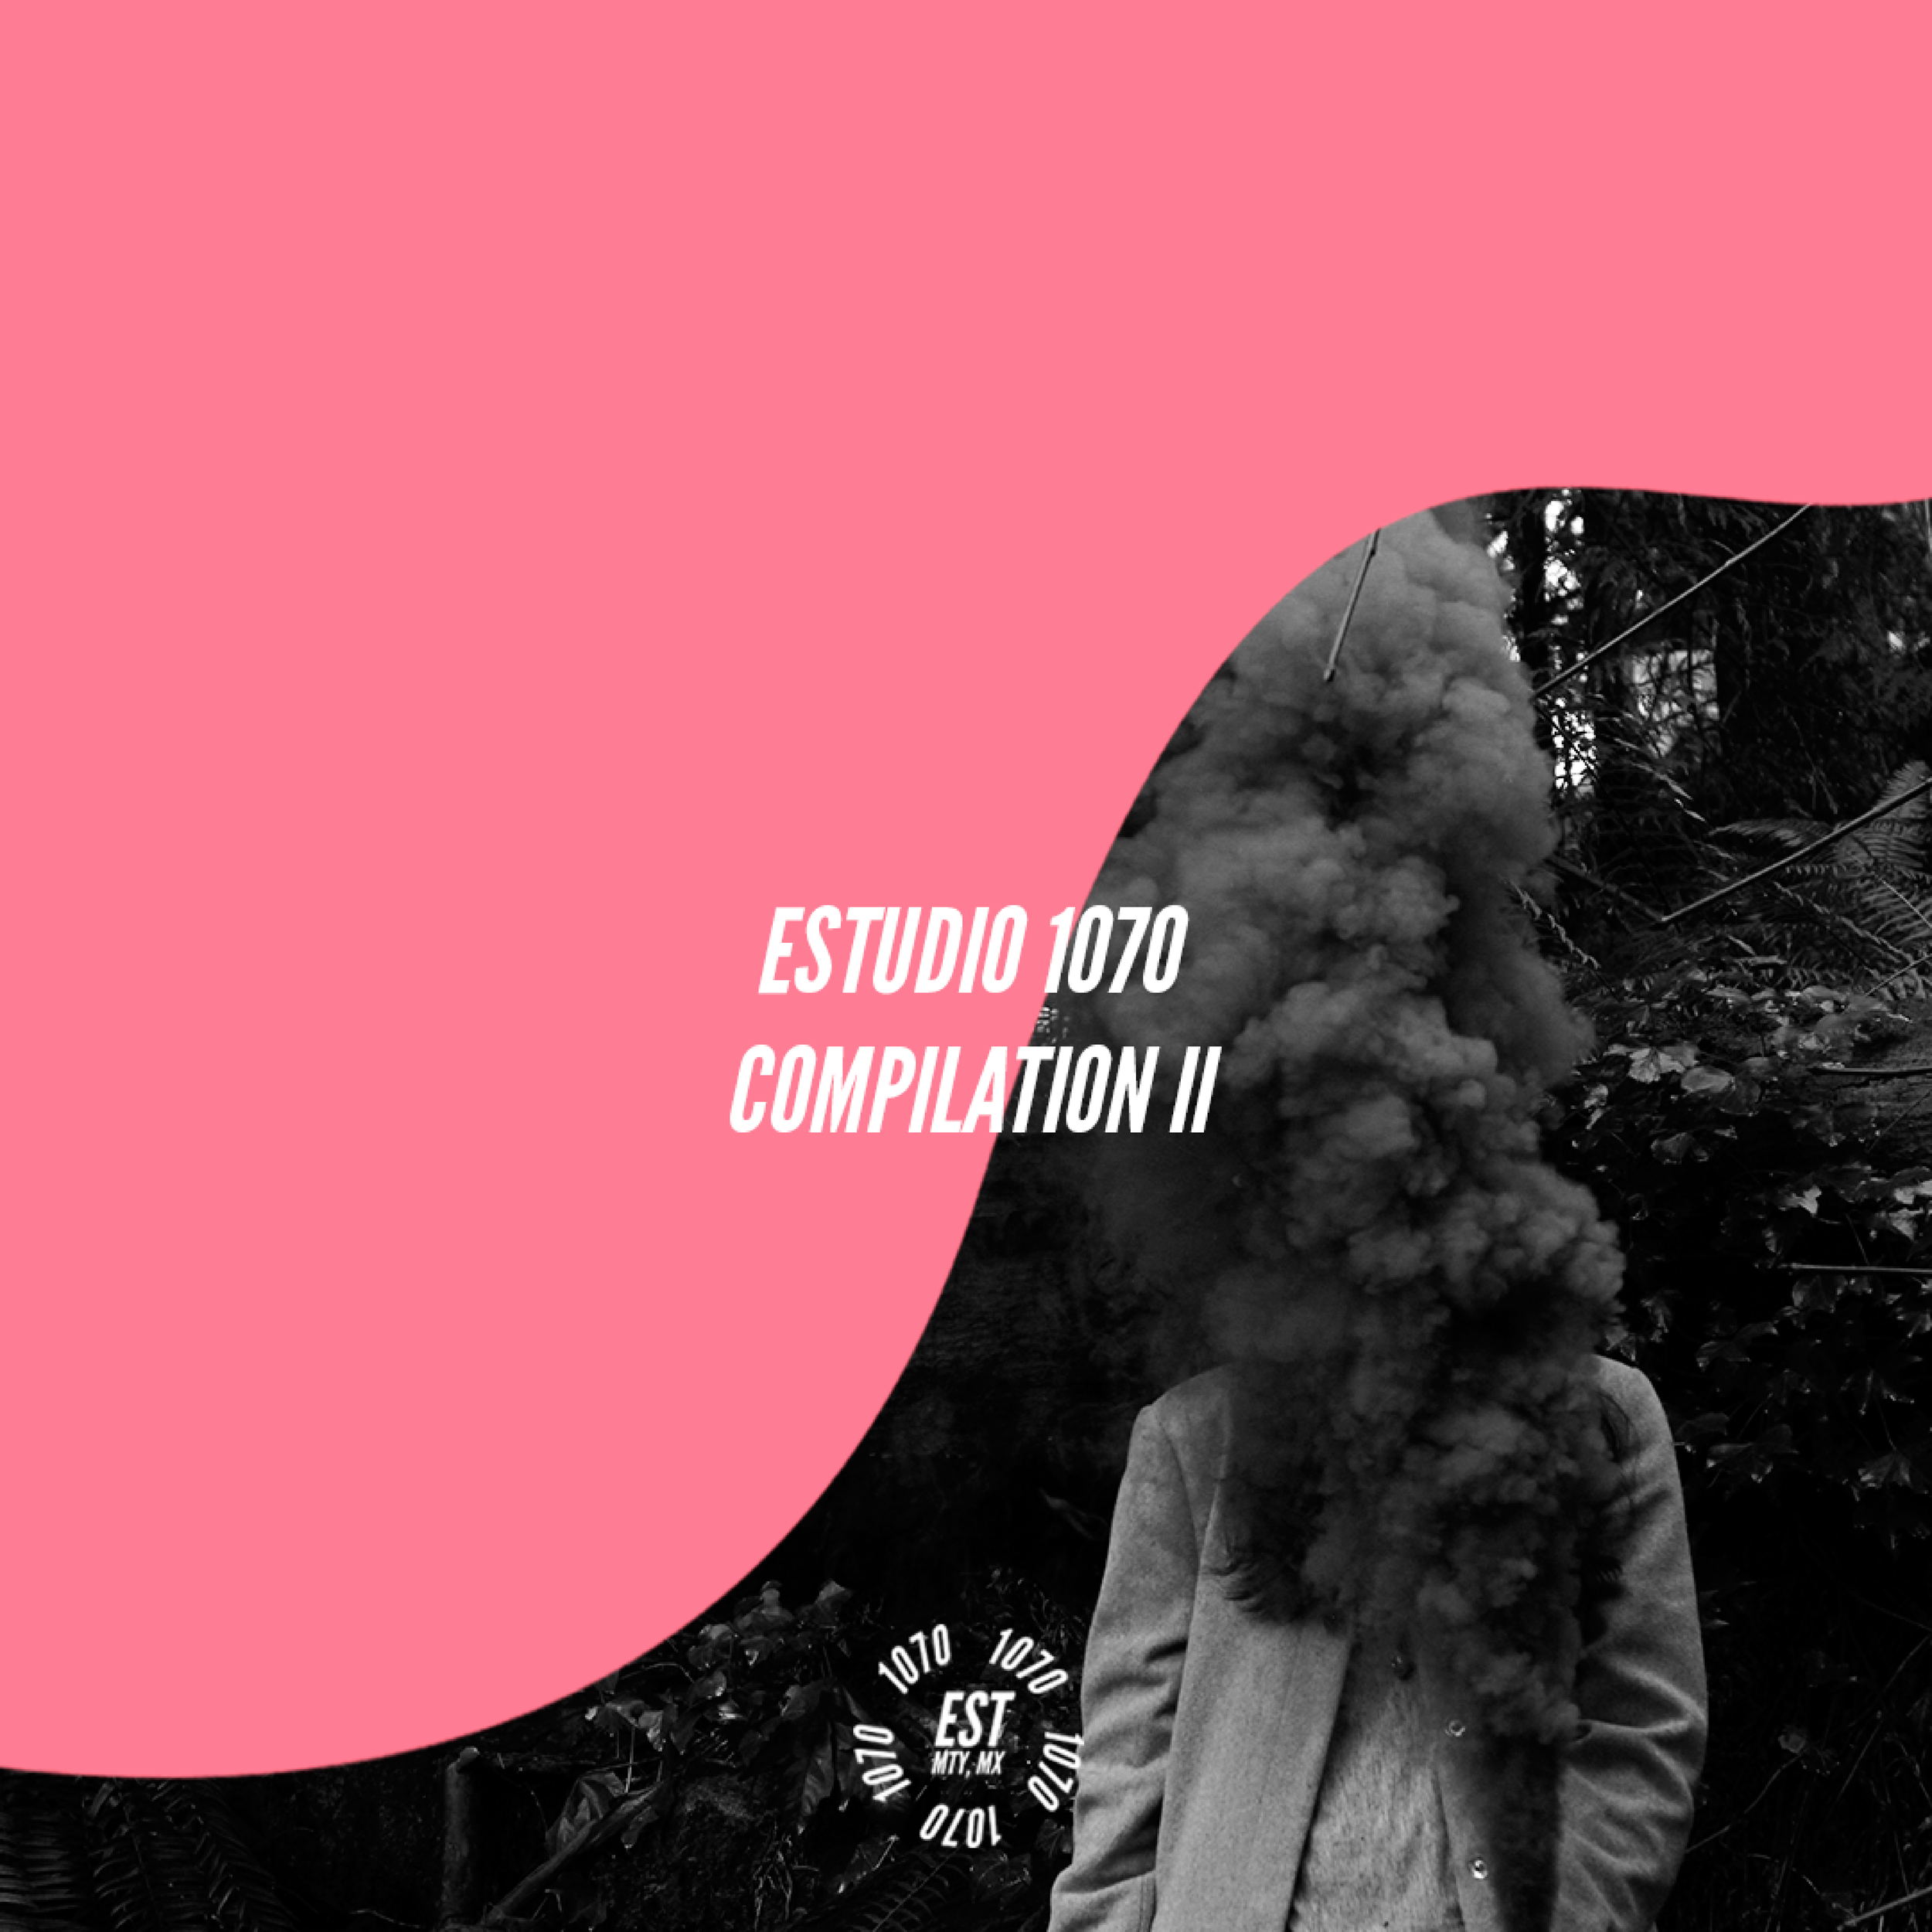 Estudio 1070 Compilation II   Second curated album of Estudio 1070 that embraces the urban sound that is an emblematic part of the style of the artists that collaborate and work inside an outside the studio.